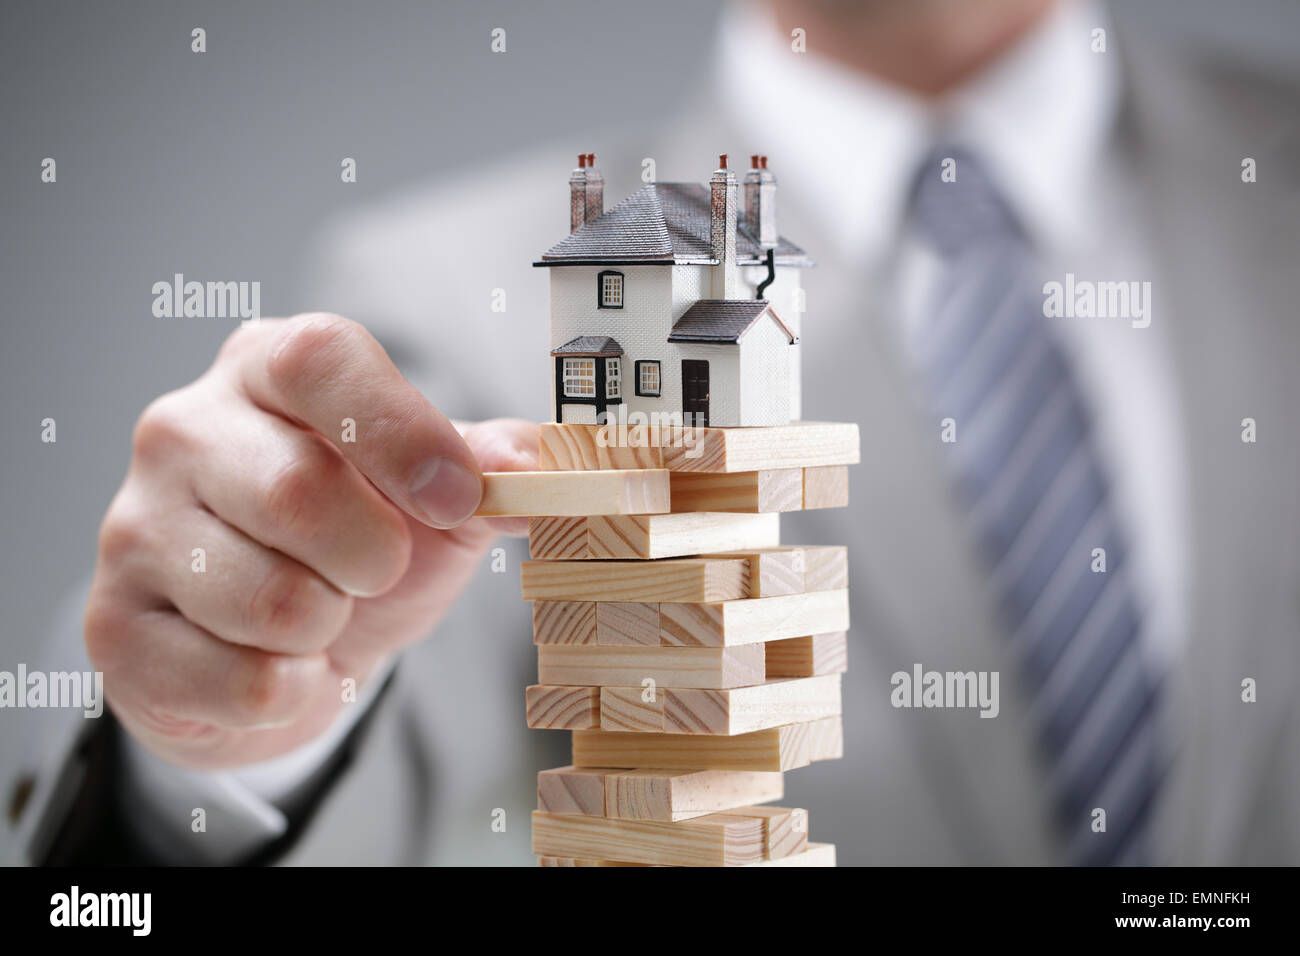 Housing market risk - Stock Image